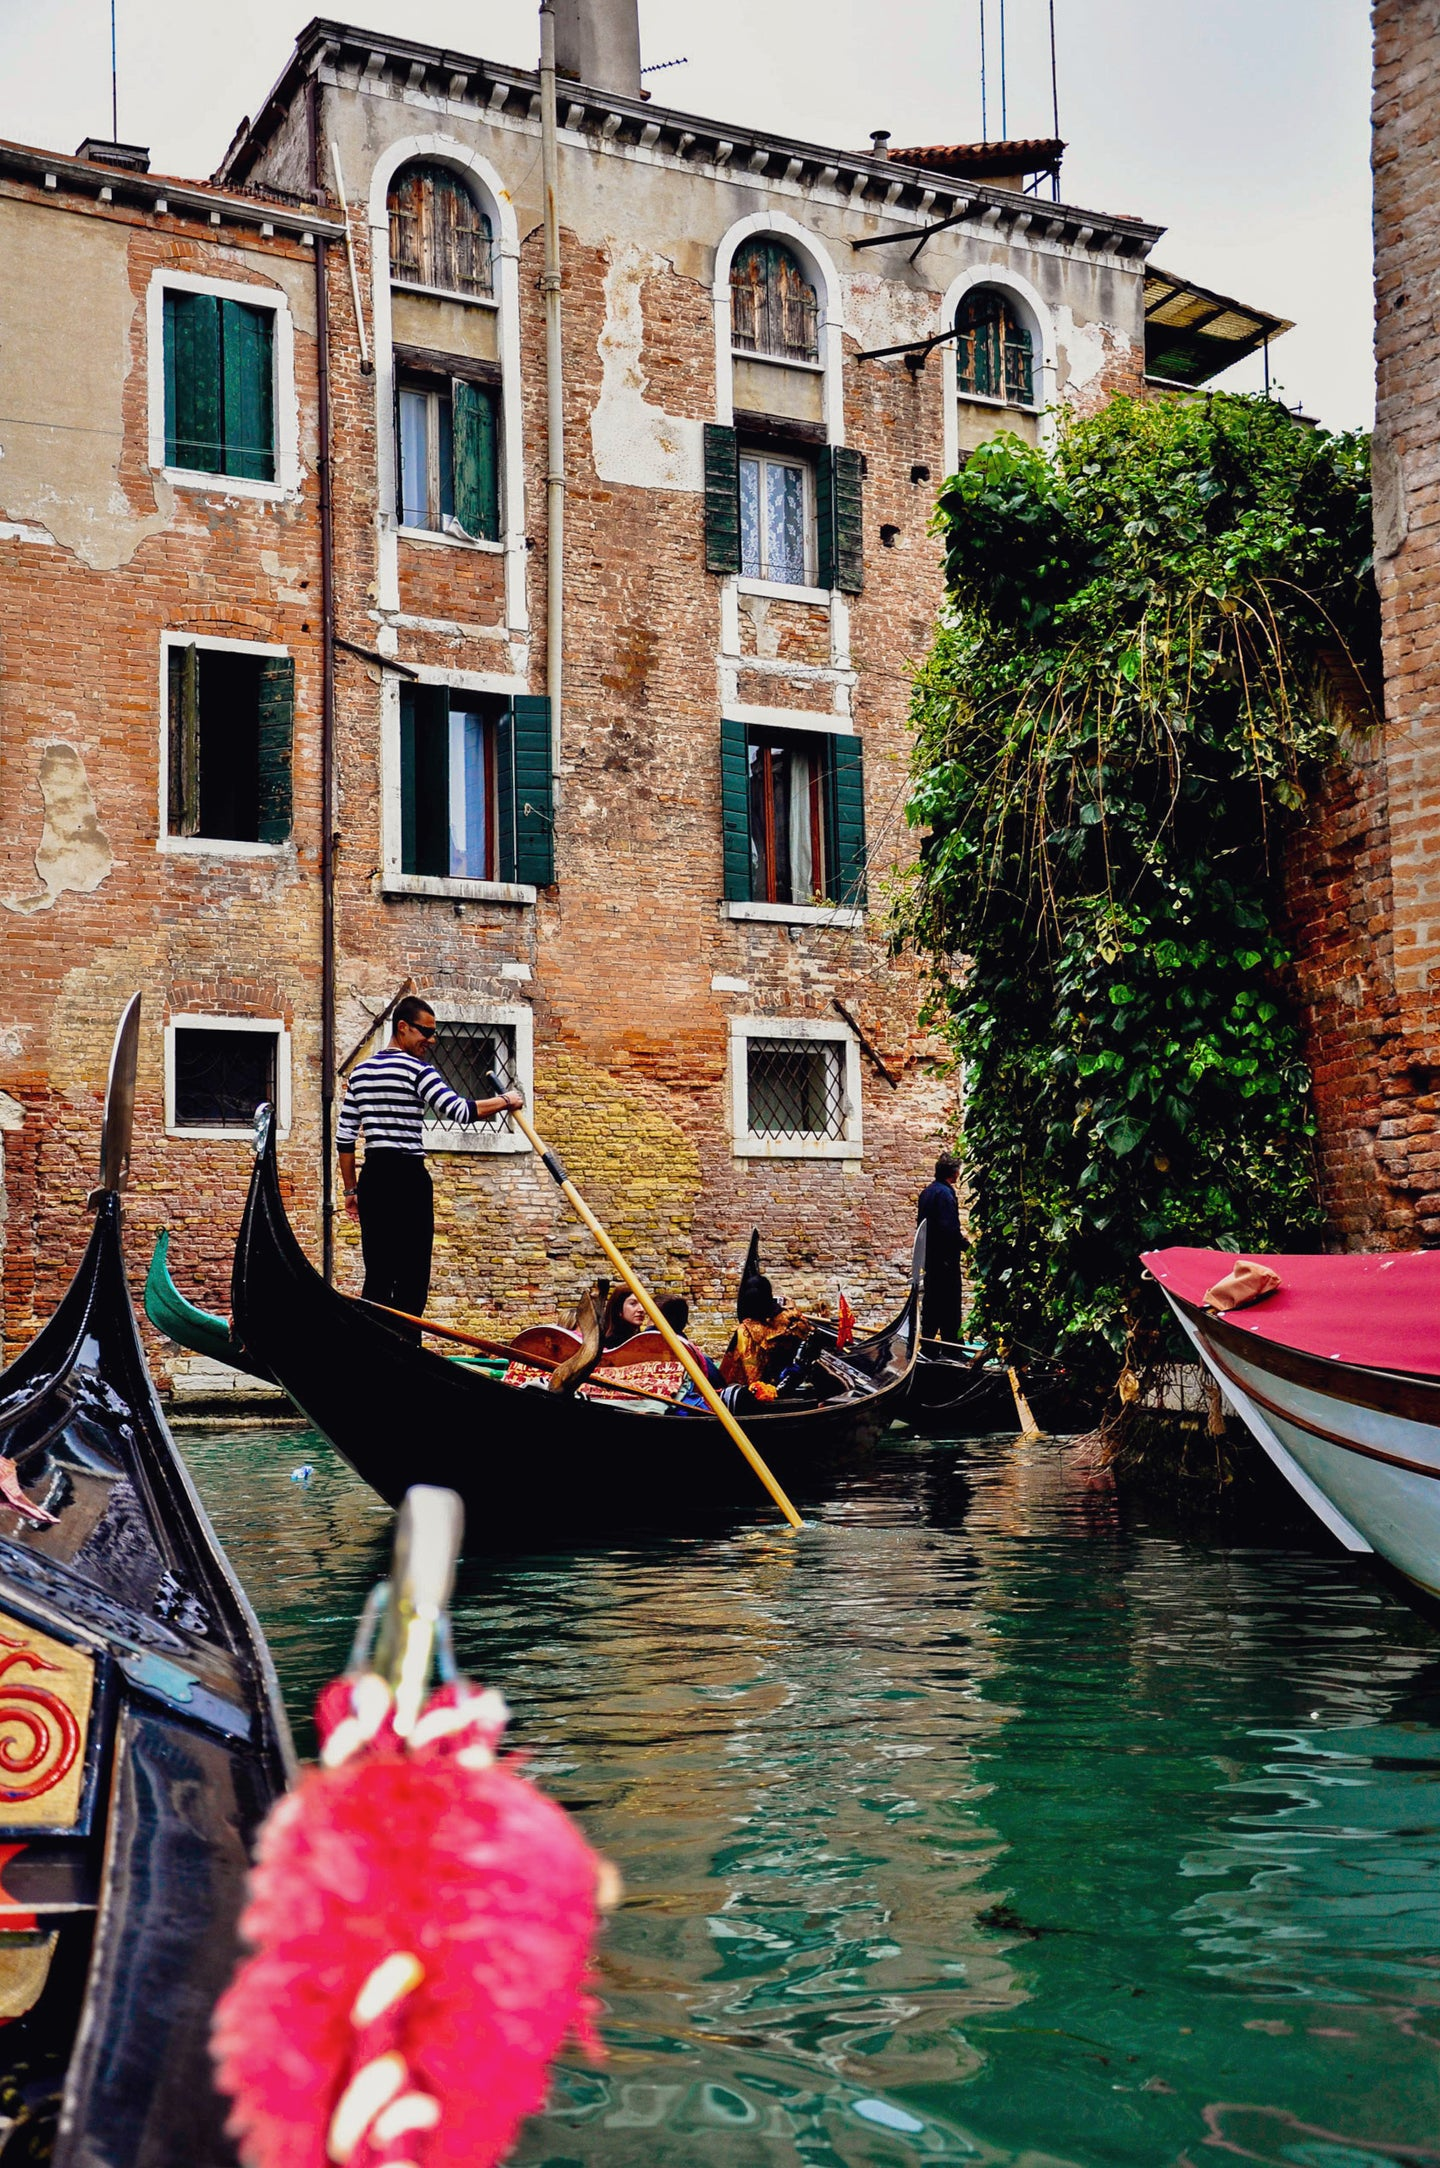 Canals of Venice 3 - Gorgeous View - Tracy McCrackin Photography